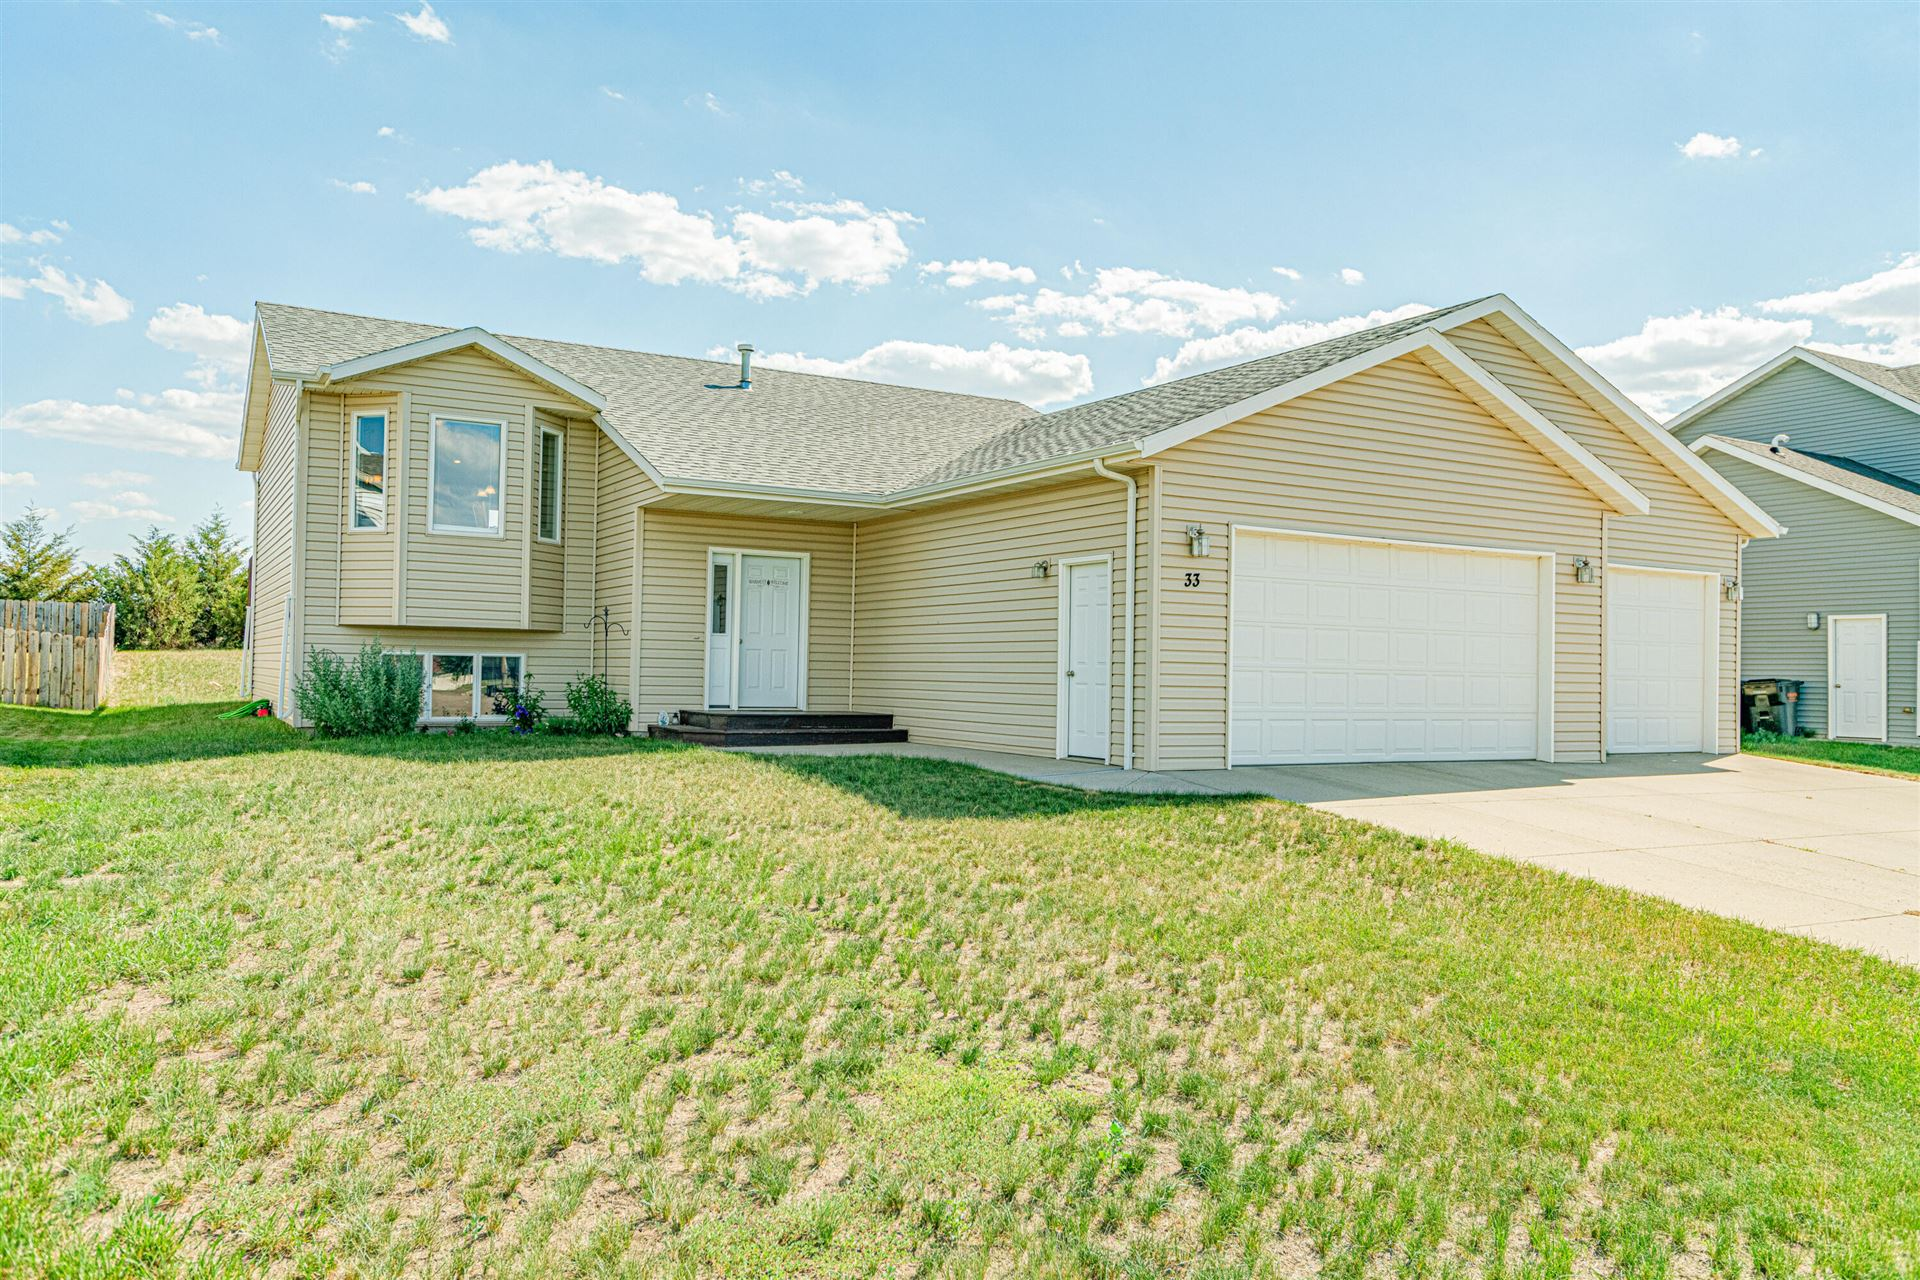 33 Mcginnis Way, Lincoln, ND 58504 - #: 411988